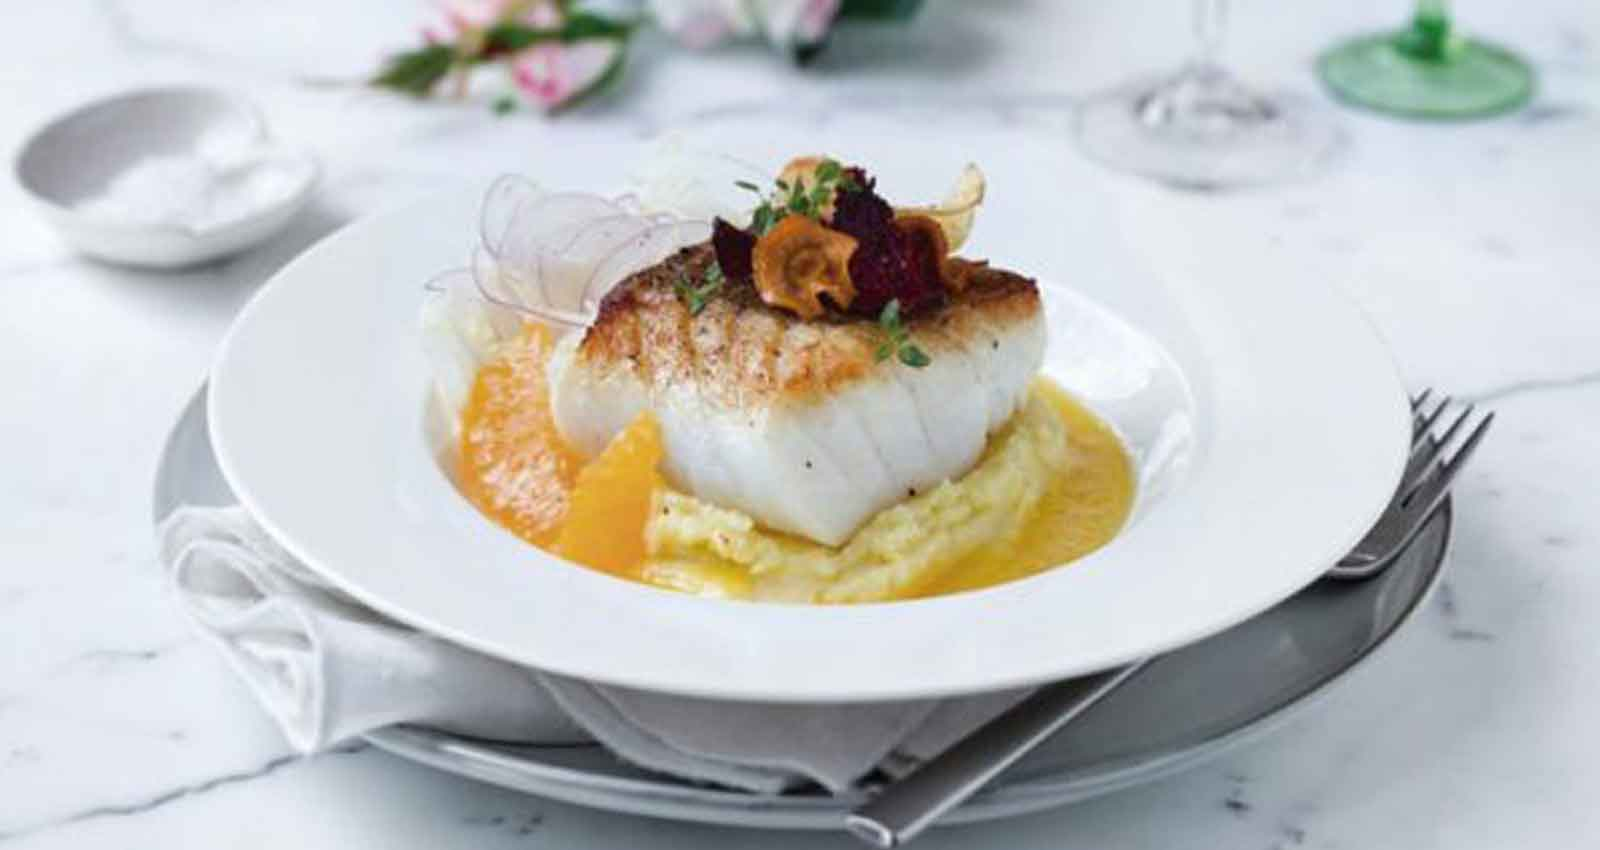 Skrei in a pan with orange sauce and mashed potatoes - Gastroactitud.  Passion for food